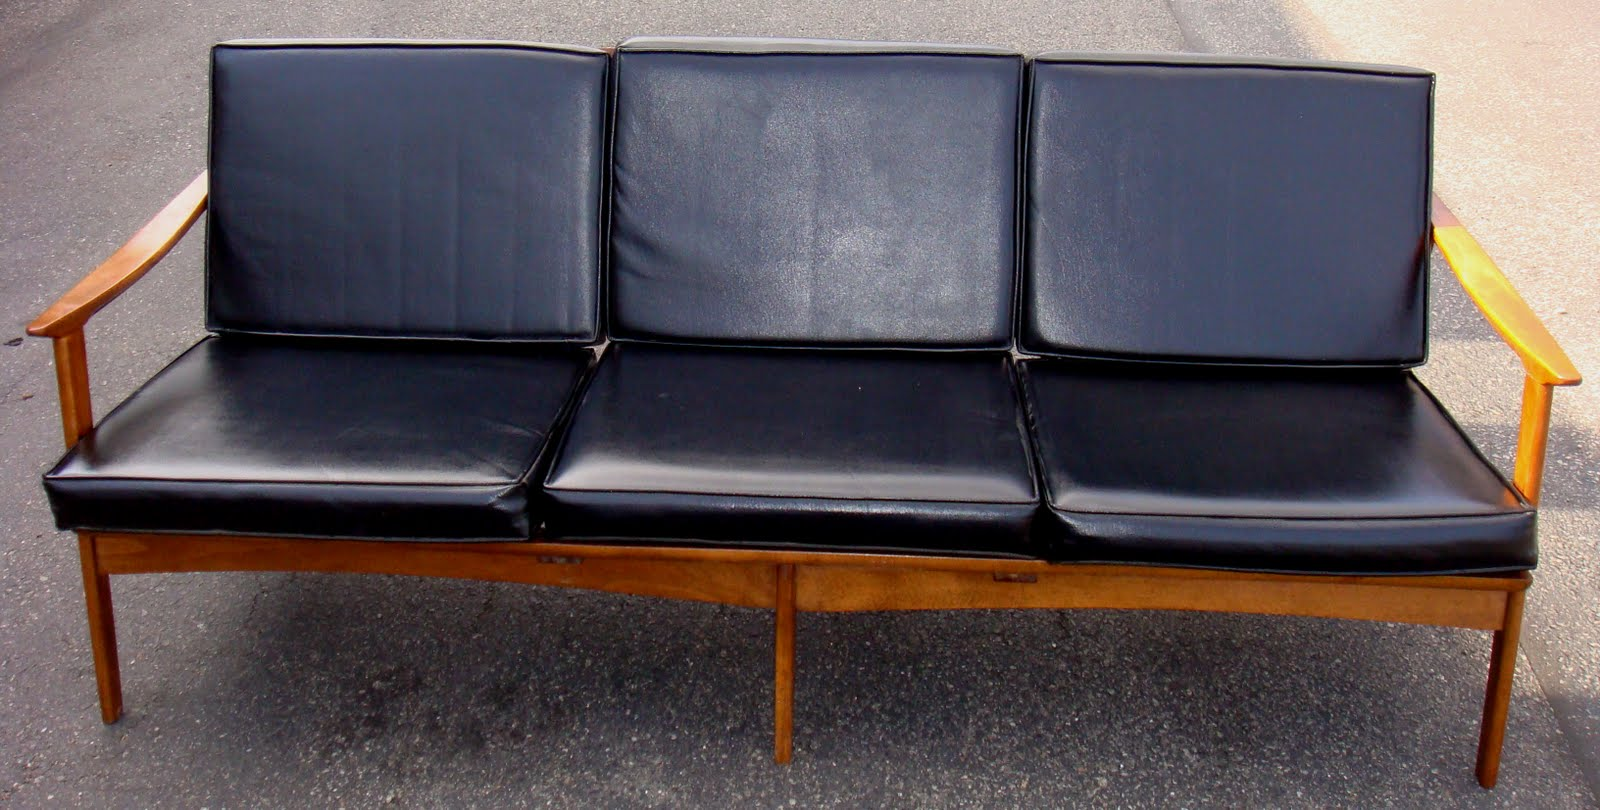 Mid Century Sofa W/ Black Vinyl Cushions!! PERFECT Condition!! Dimensions :  71 Inches Length / 33 Inches Depth / 27 Inches Height